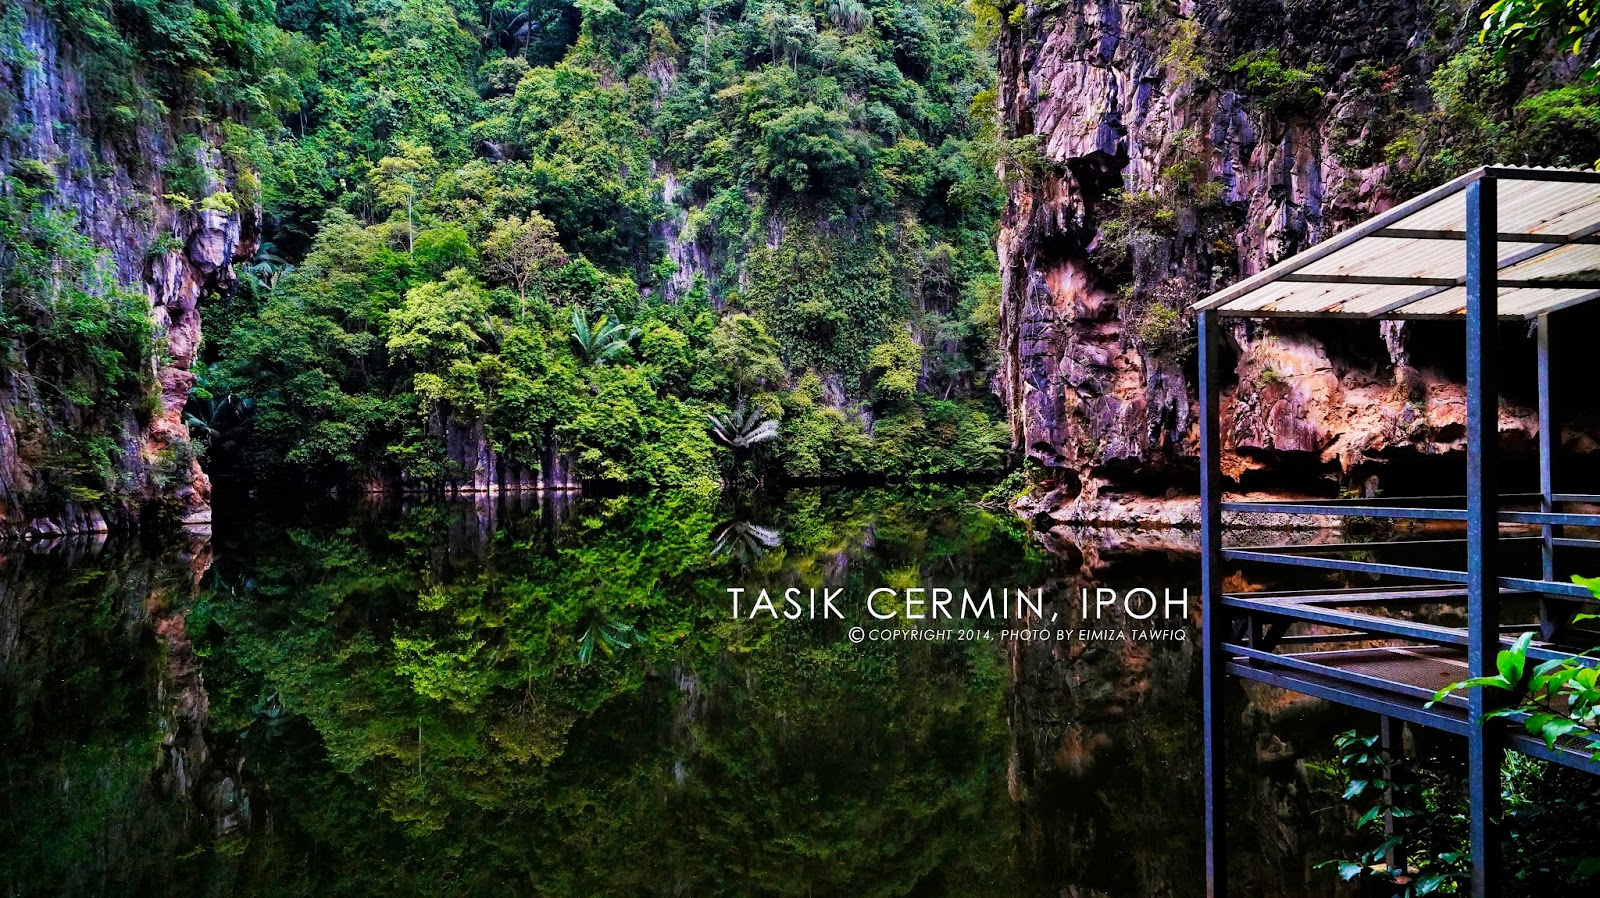 Nature of Tasik Cermin, Ipoh